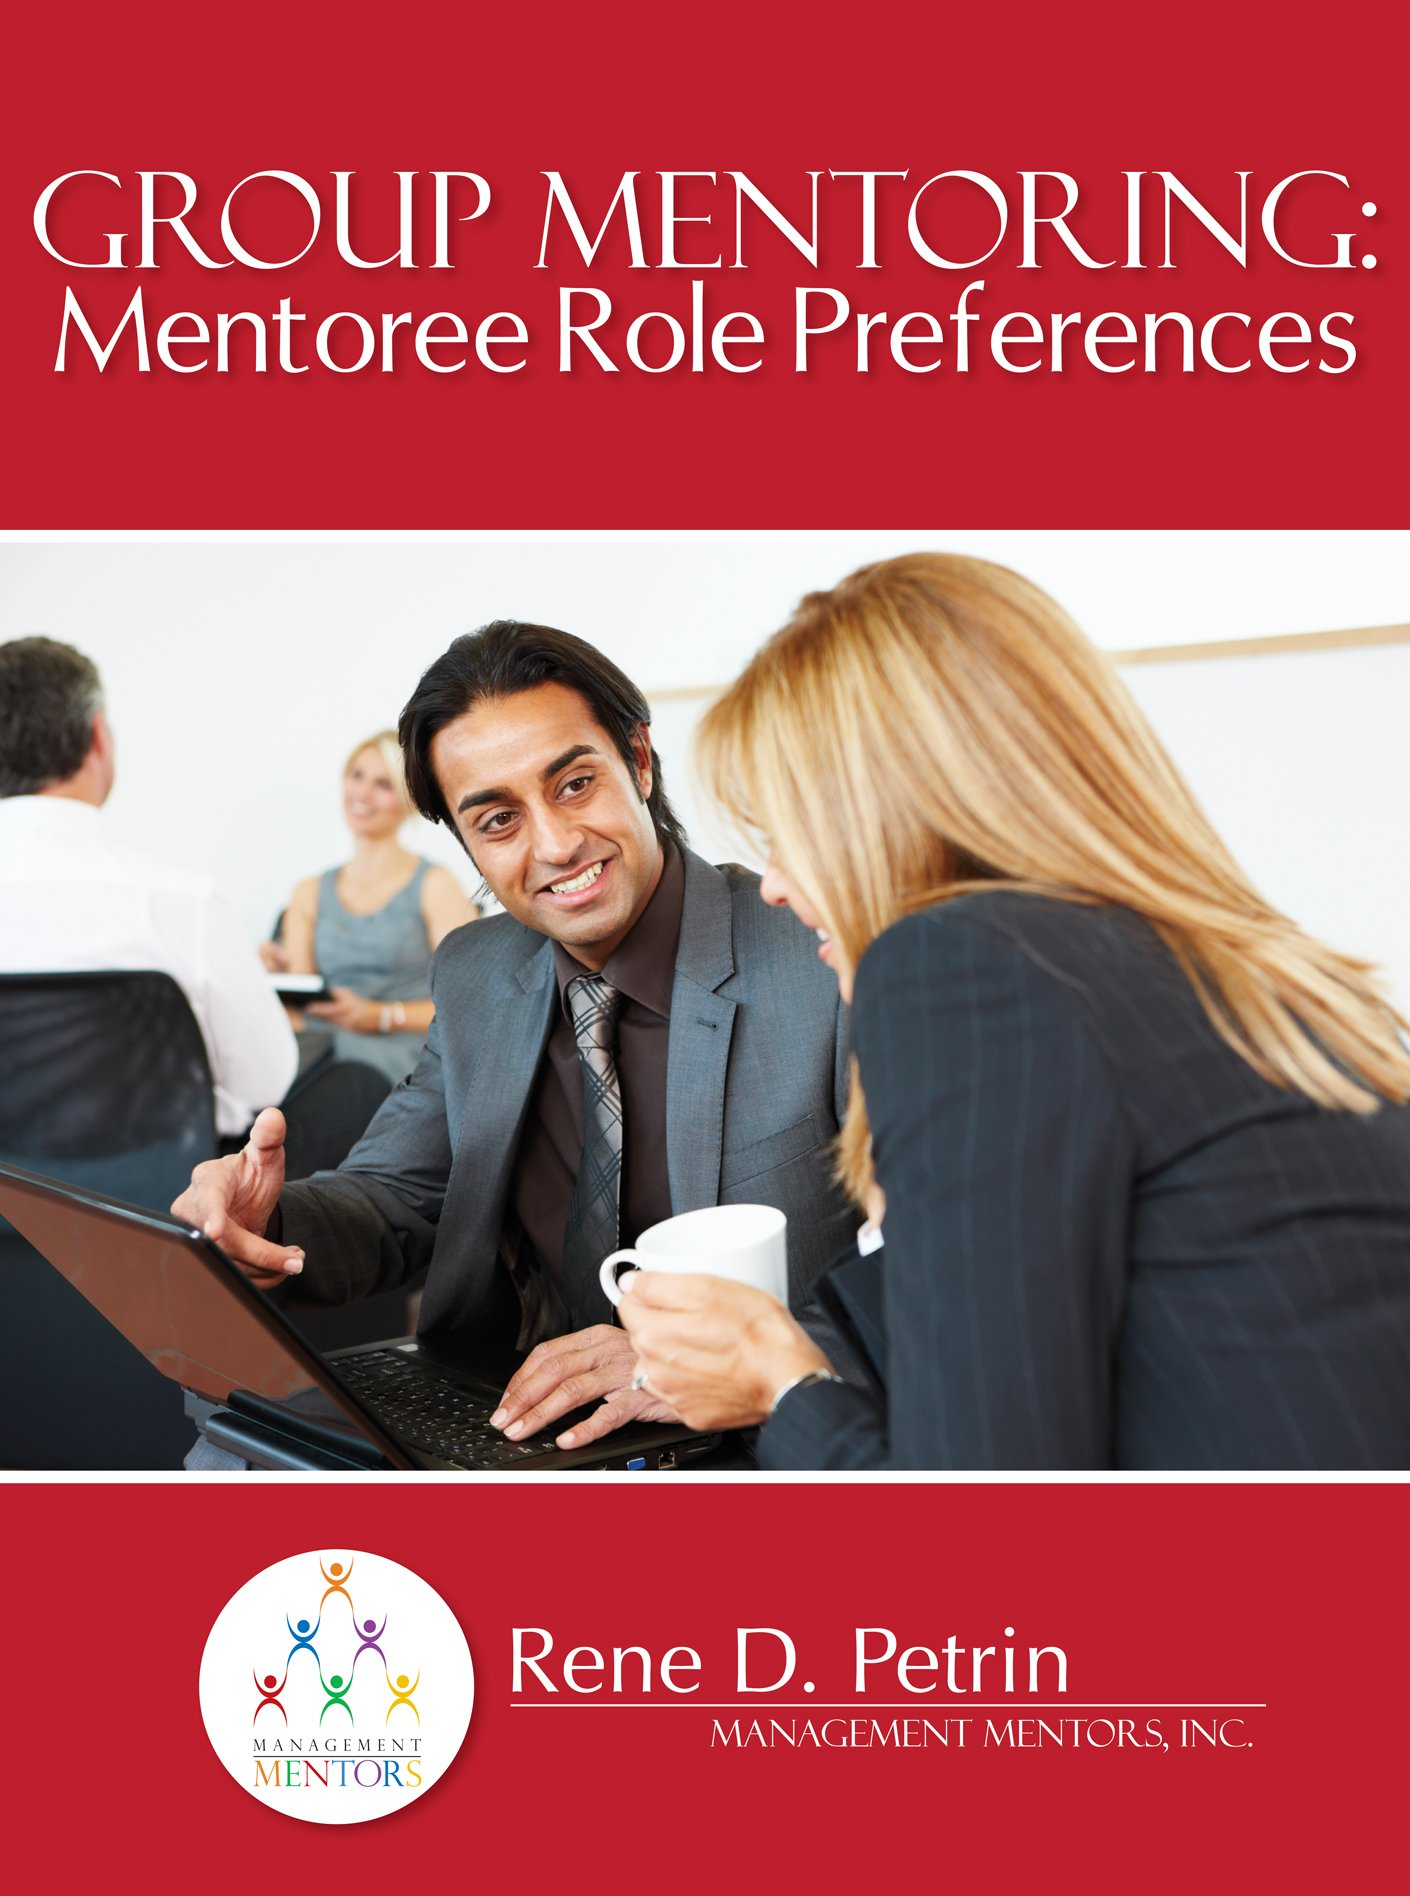 Group Mentoring Mentoree Role Preferences